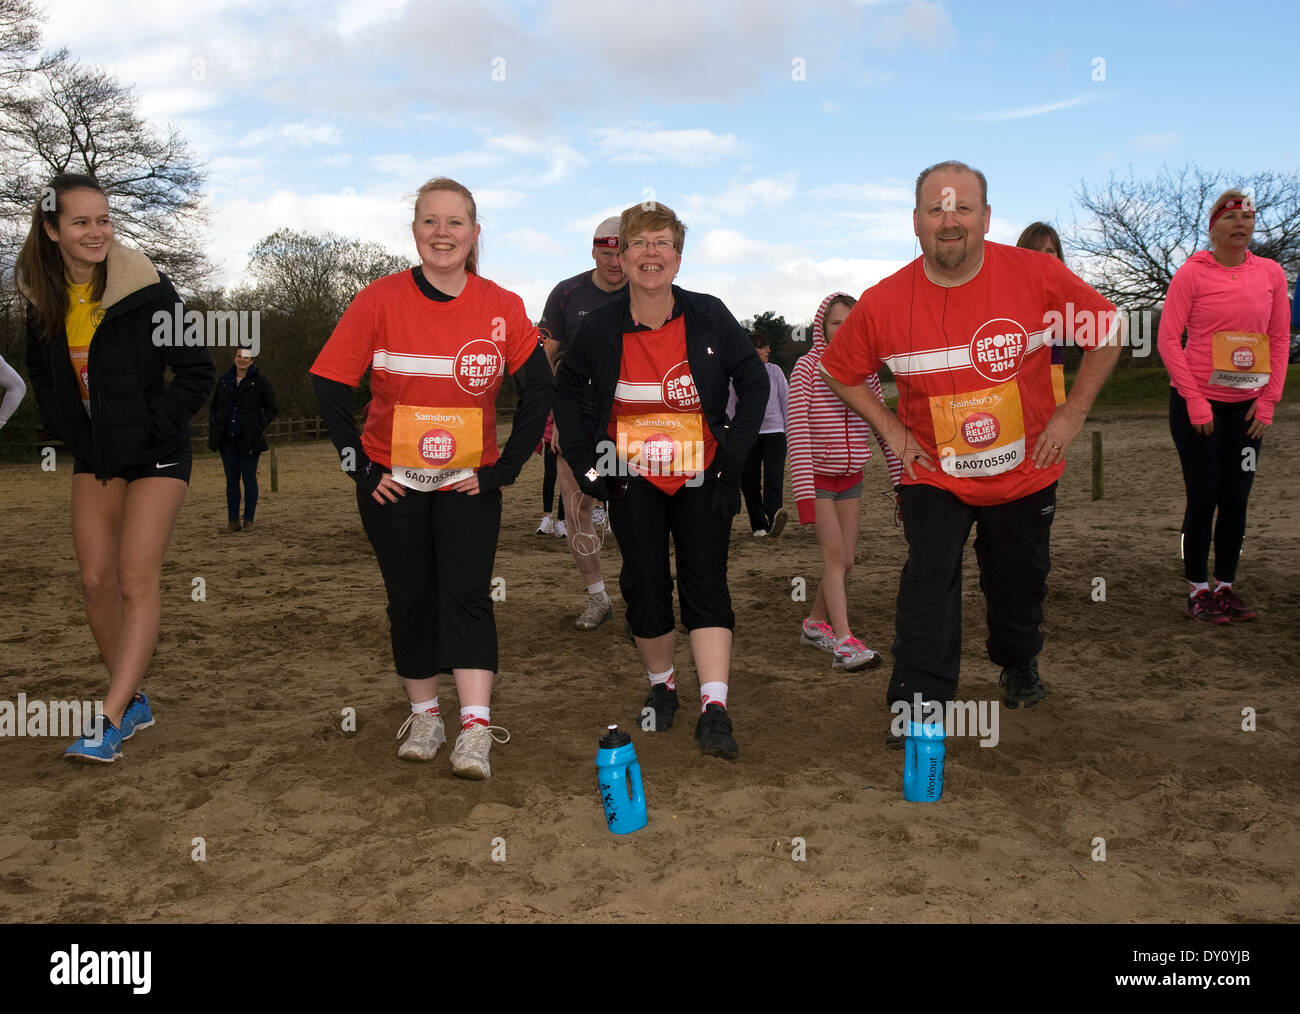 Volunteer runners for Sport Relief 2014 warming up prior to the race, Frensham, UK. - Stock Image